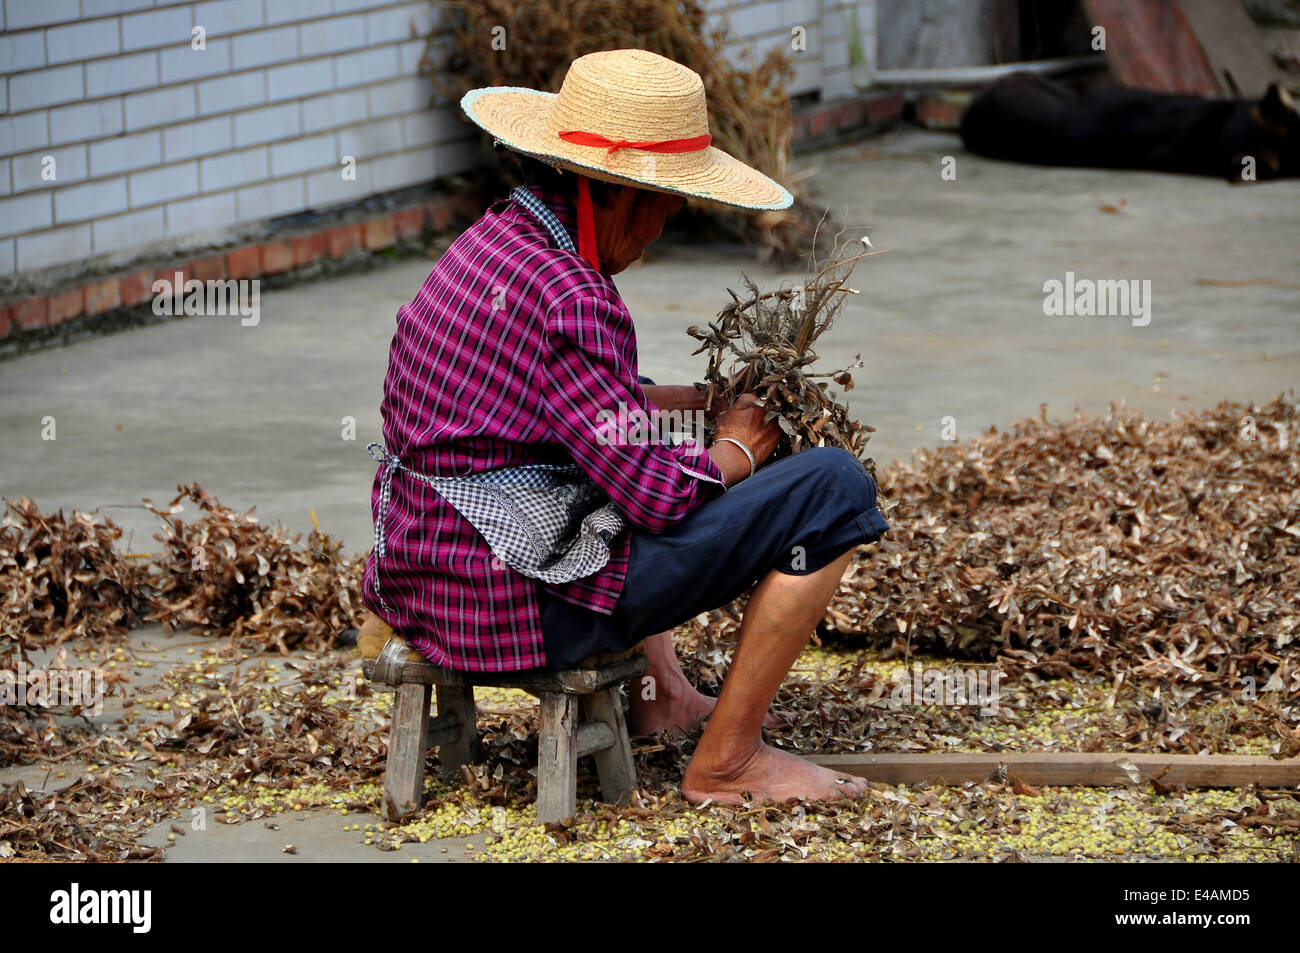 Wondrous Pengzhou China A Woman Sitting On A Small Stool In The Gmtry Best Dining Table And Chair Ideas Images Gmtryco